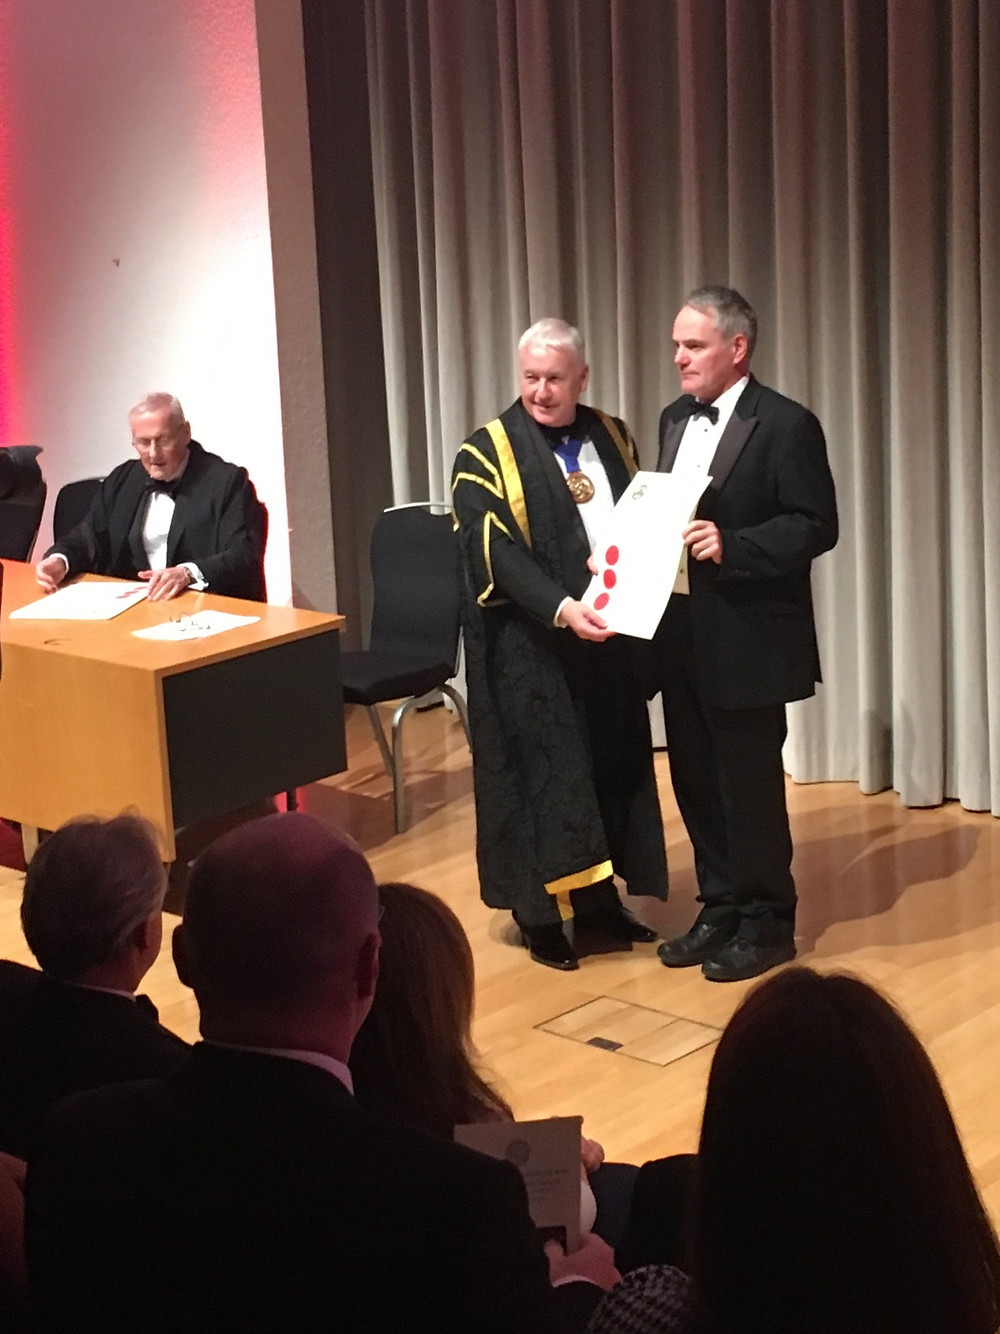 Dr Mark Dale awarded Honorary Membership of the Faculty of Pharmaceutical Medicine